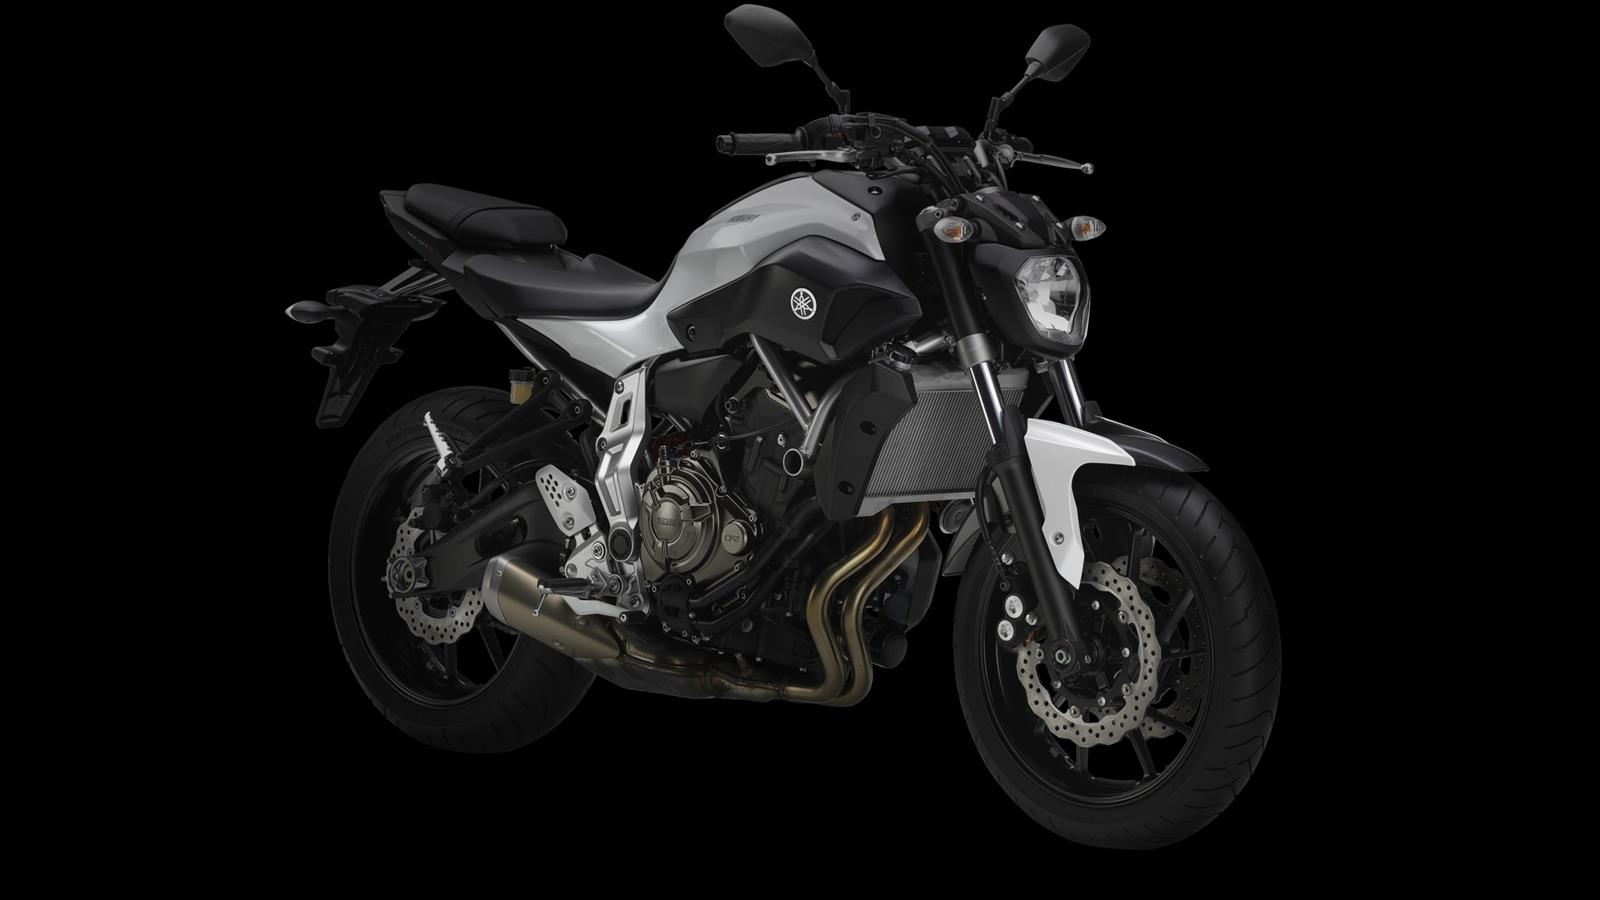 Yamaha-MT-07 Competition-White Wallpaper HD (1600 × 900)